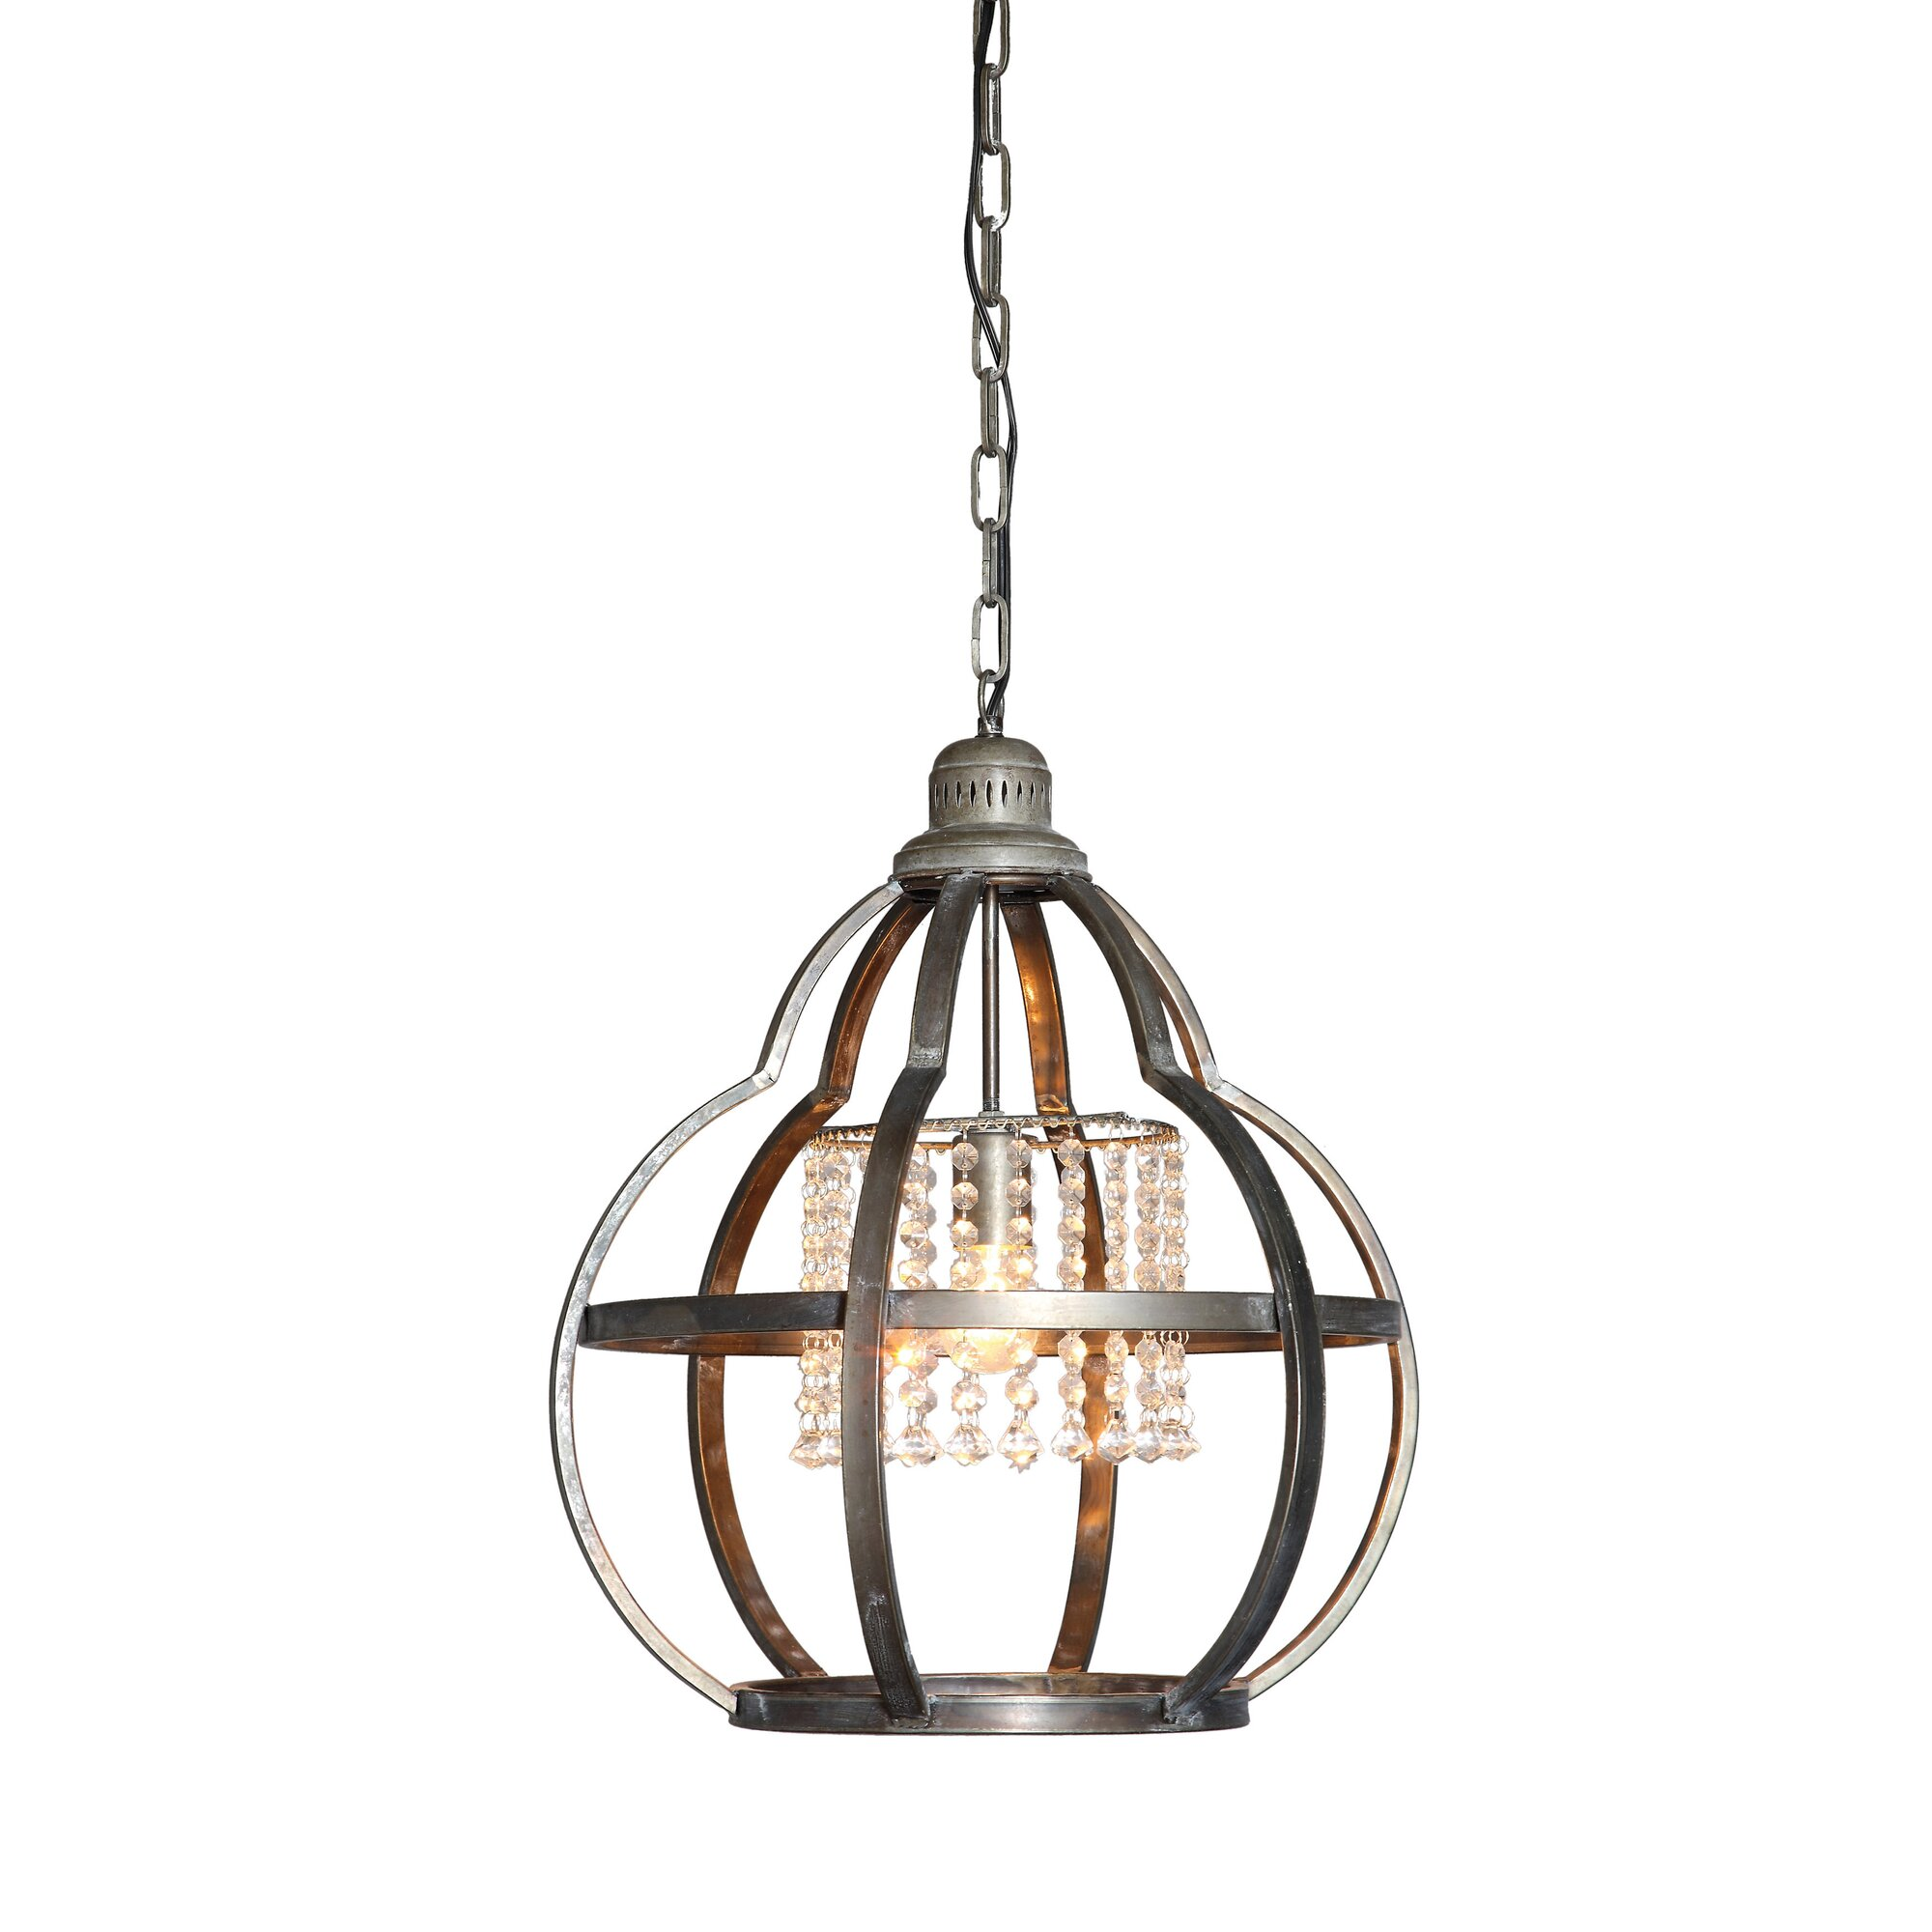 Creative co op lighting - Creative Co Op Turn Of The Century 1 Light Schoolhouse Pendant Reviews Wayfair